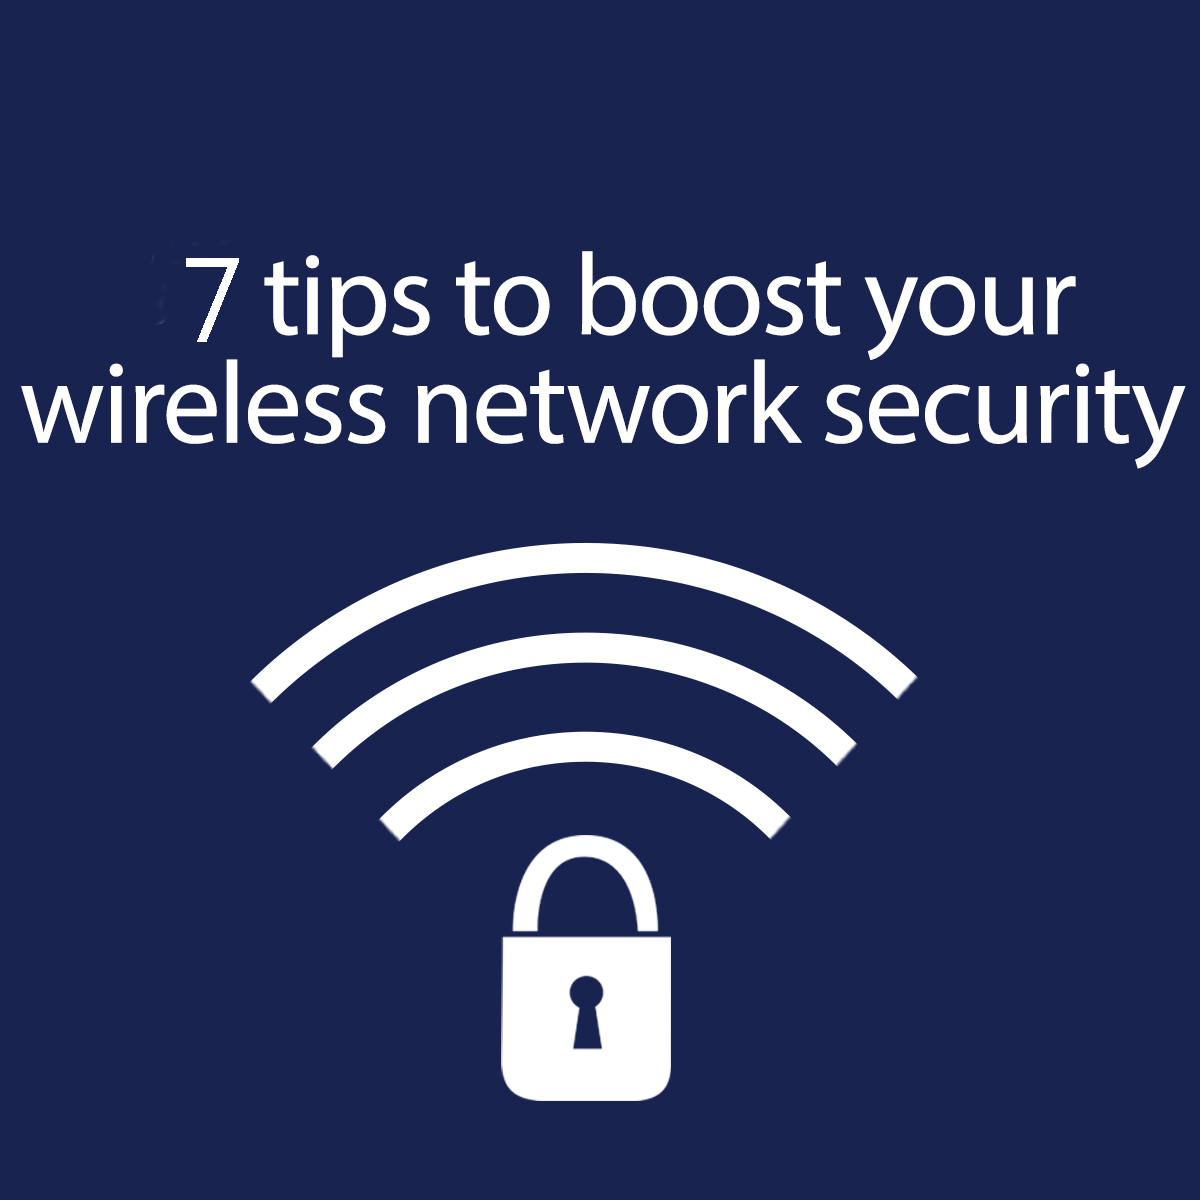 tips for securing wireless networks Wireless witch: how to secure your wireless network tips 6-10 one of the biggest concerns for wireless users is making sure their router and wireless network are secure.